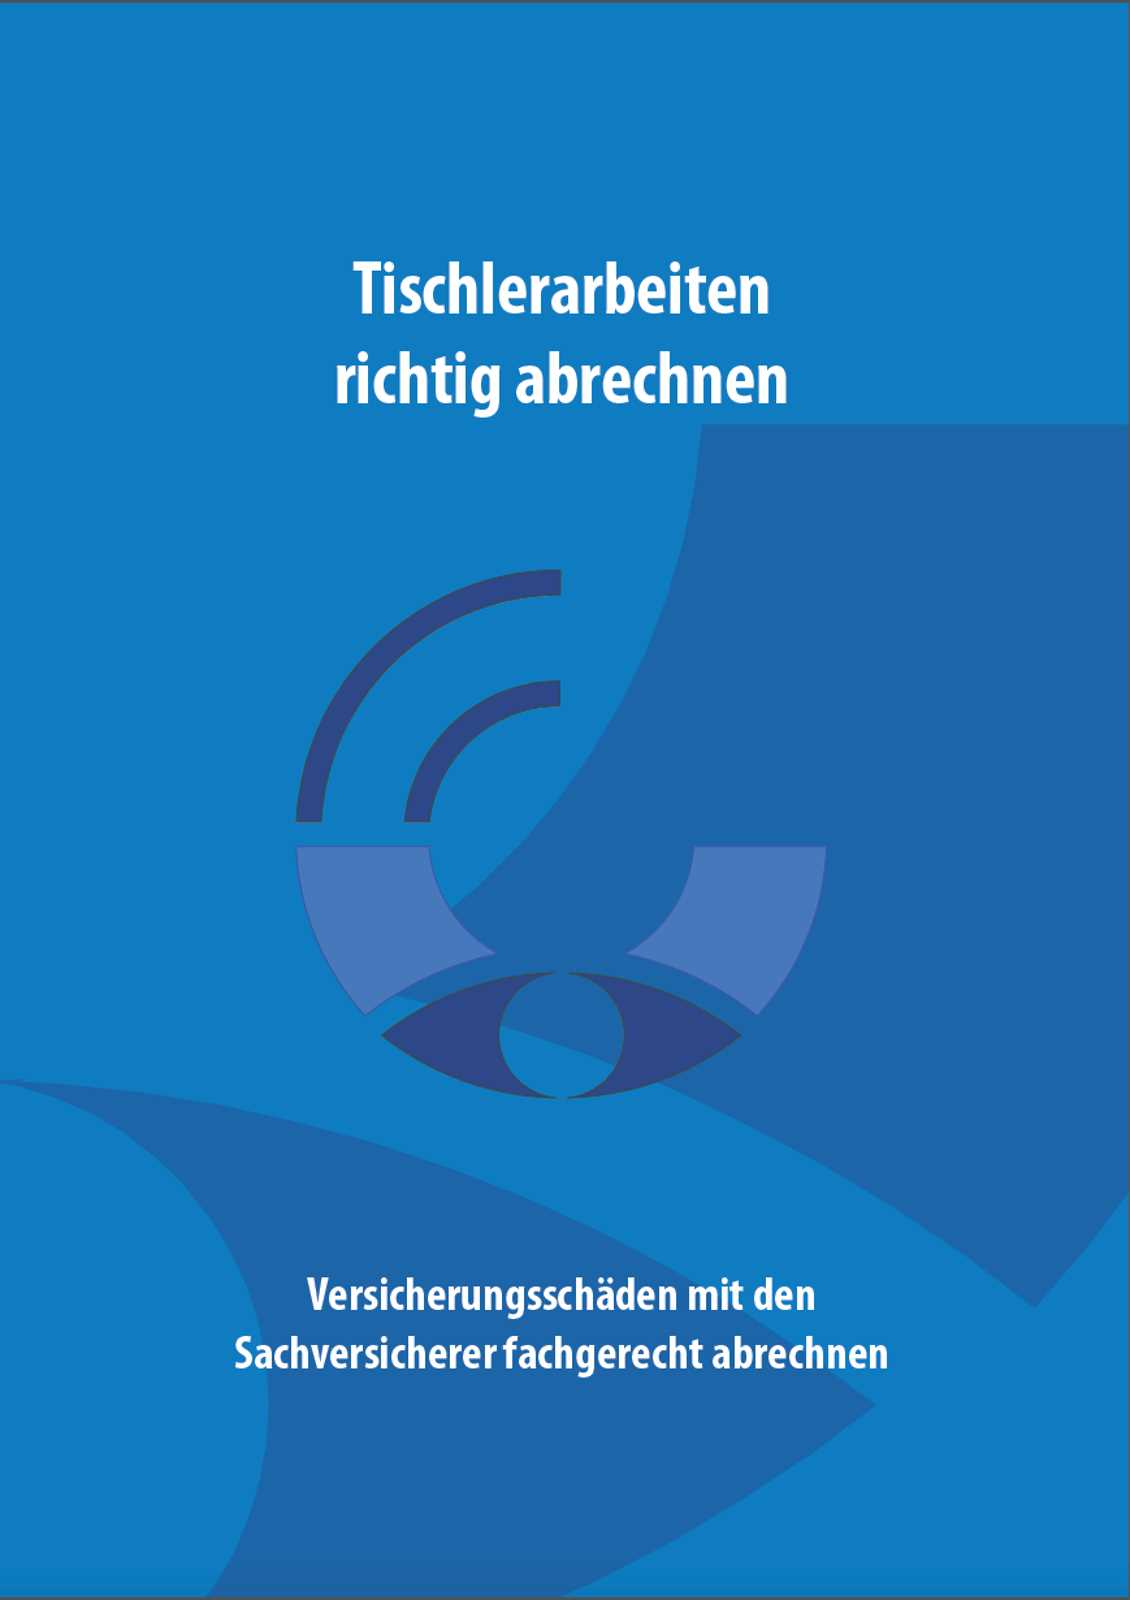 Cover rohklein1